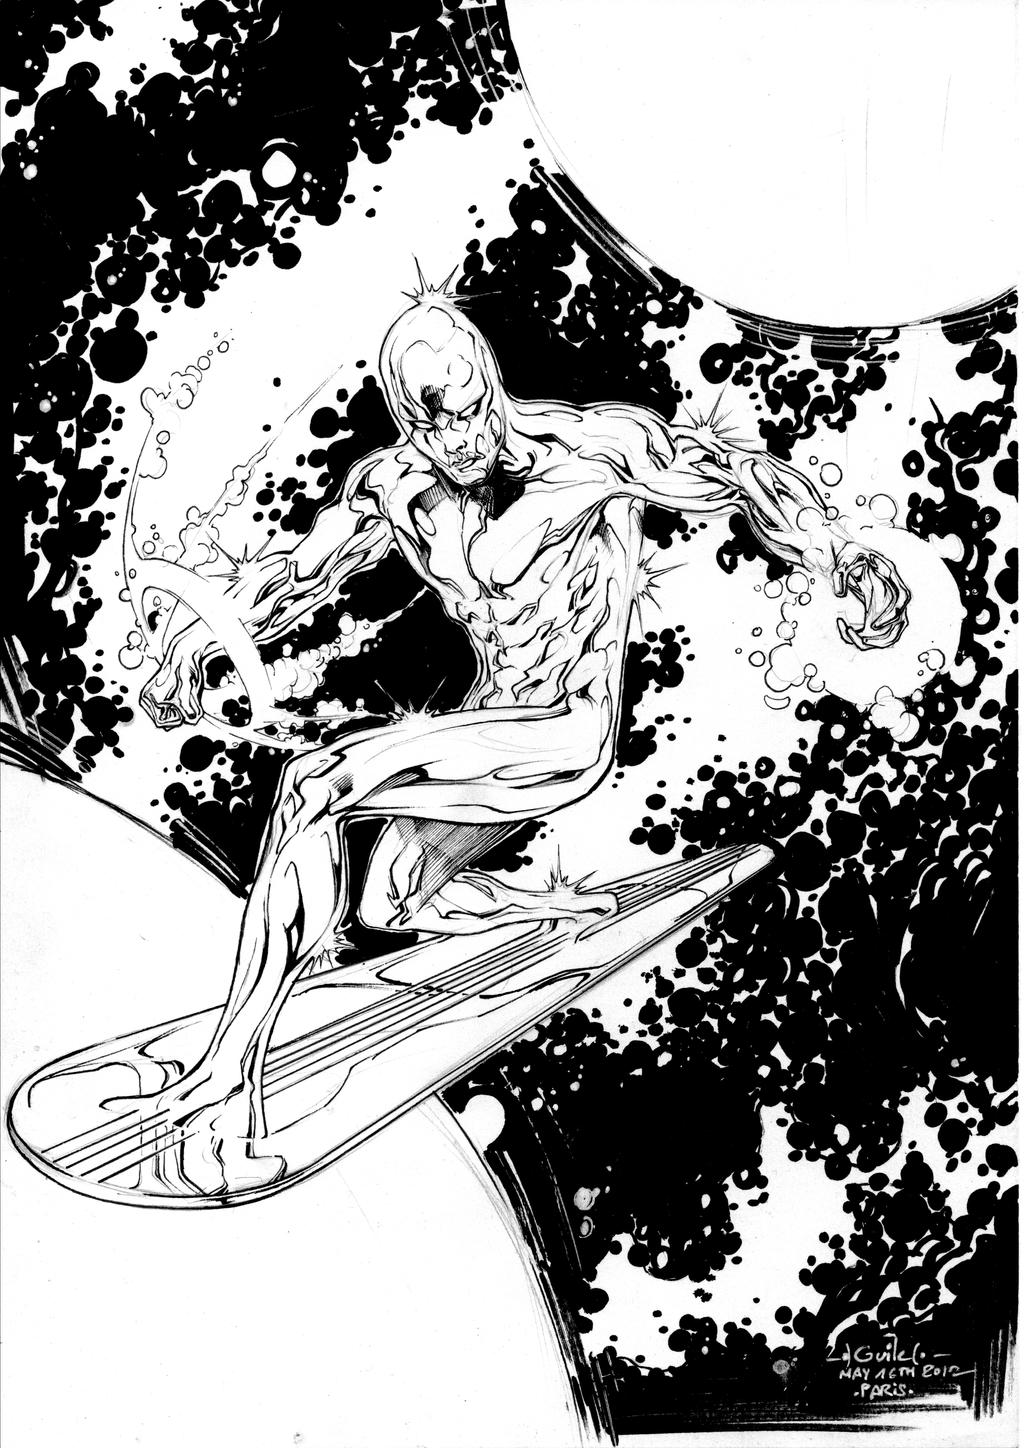 Silver Surfer - Drink'n'Draw May 16th 2012 by SpiderGuile